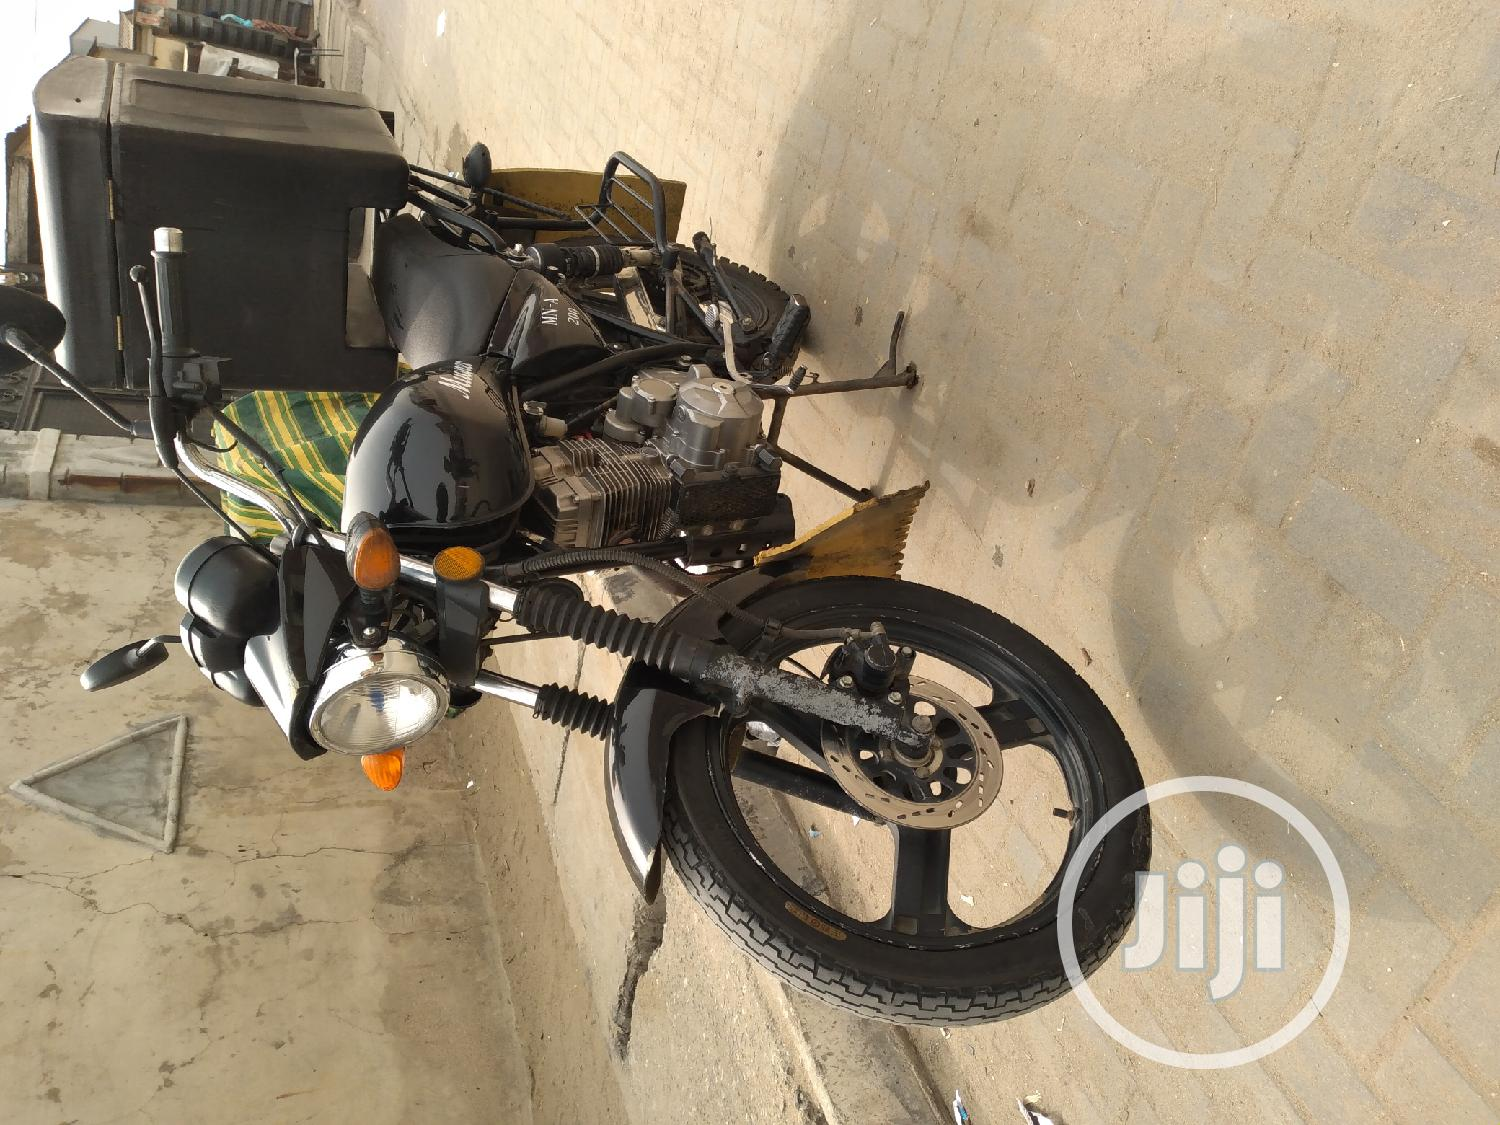 Archive: Motorcycle 2020 Black